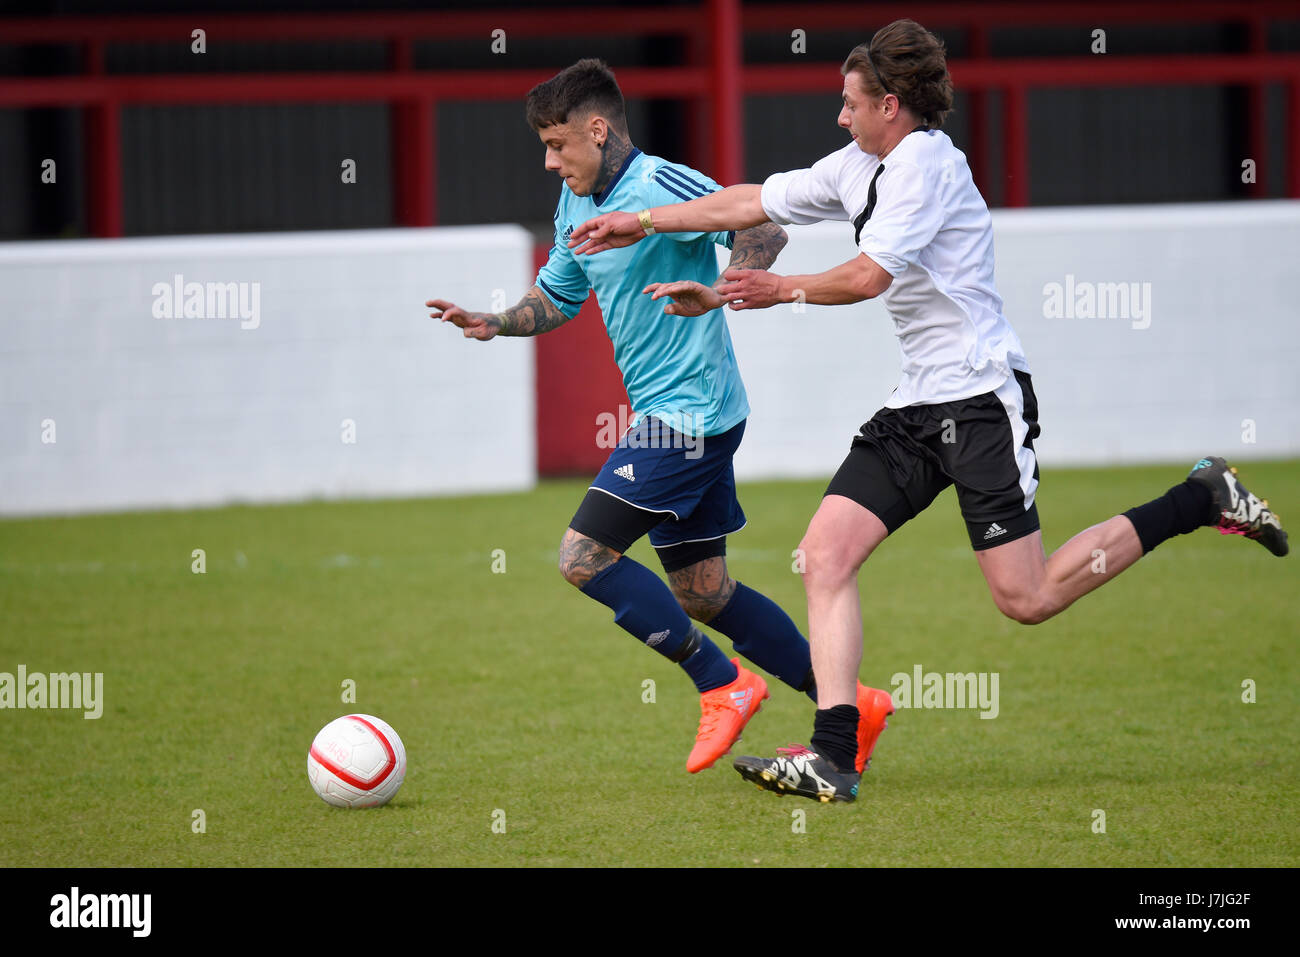 Chet Johnson playing in a charity football match in Dagenham. Space for copy - Stock Image